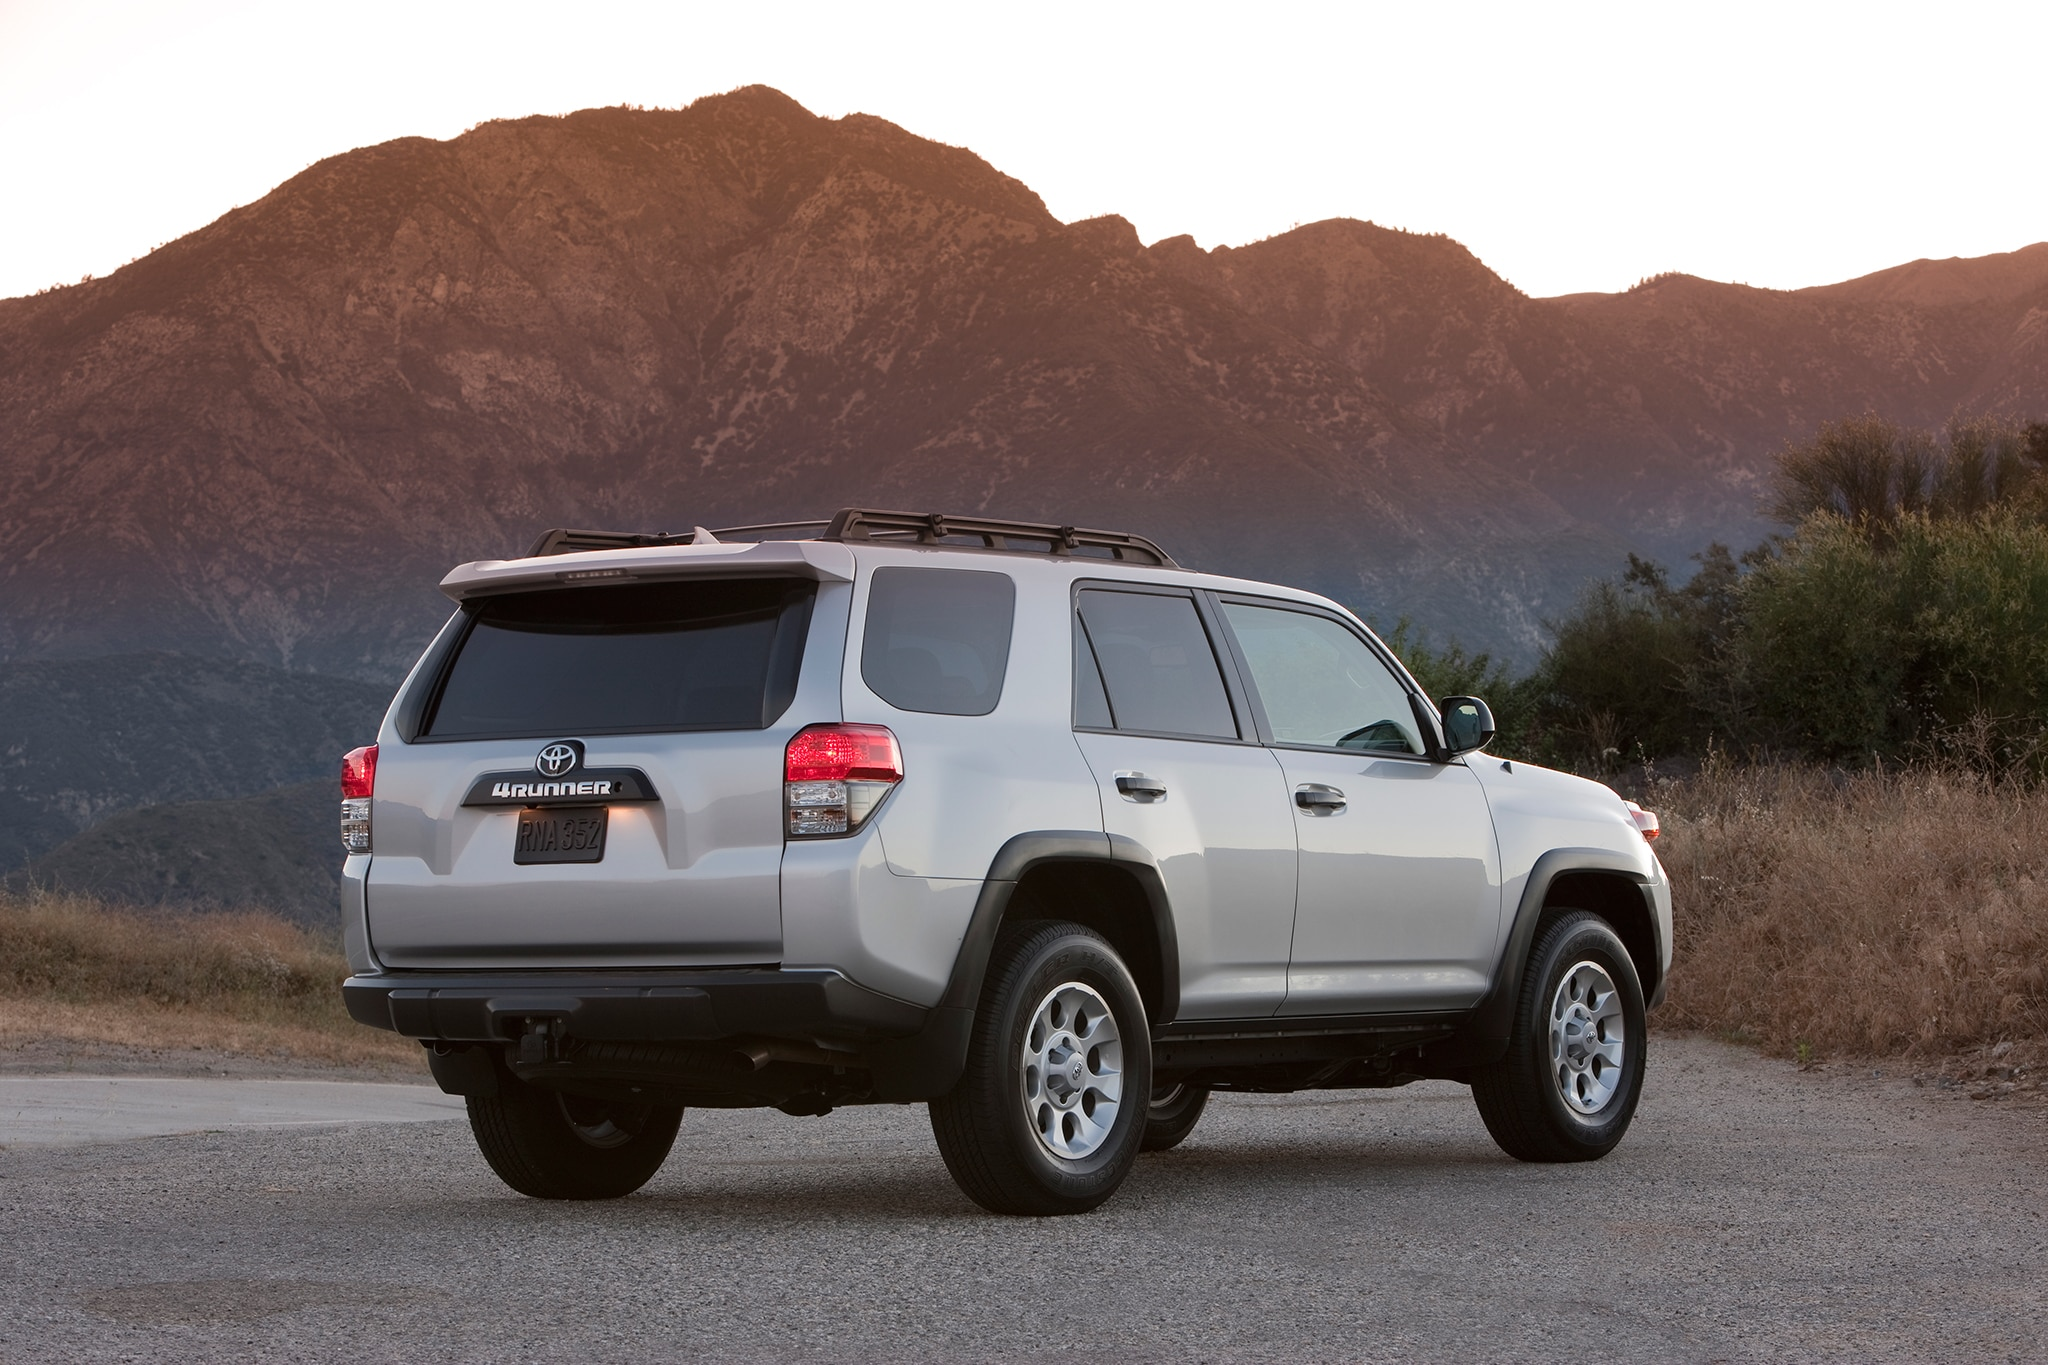 toyota teases 2014 4runner facelift before reveal. Black Bedroom Furniture Sets. Home Design Ideas